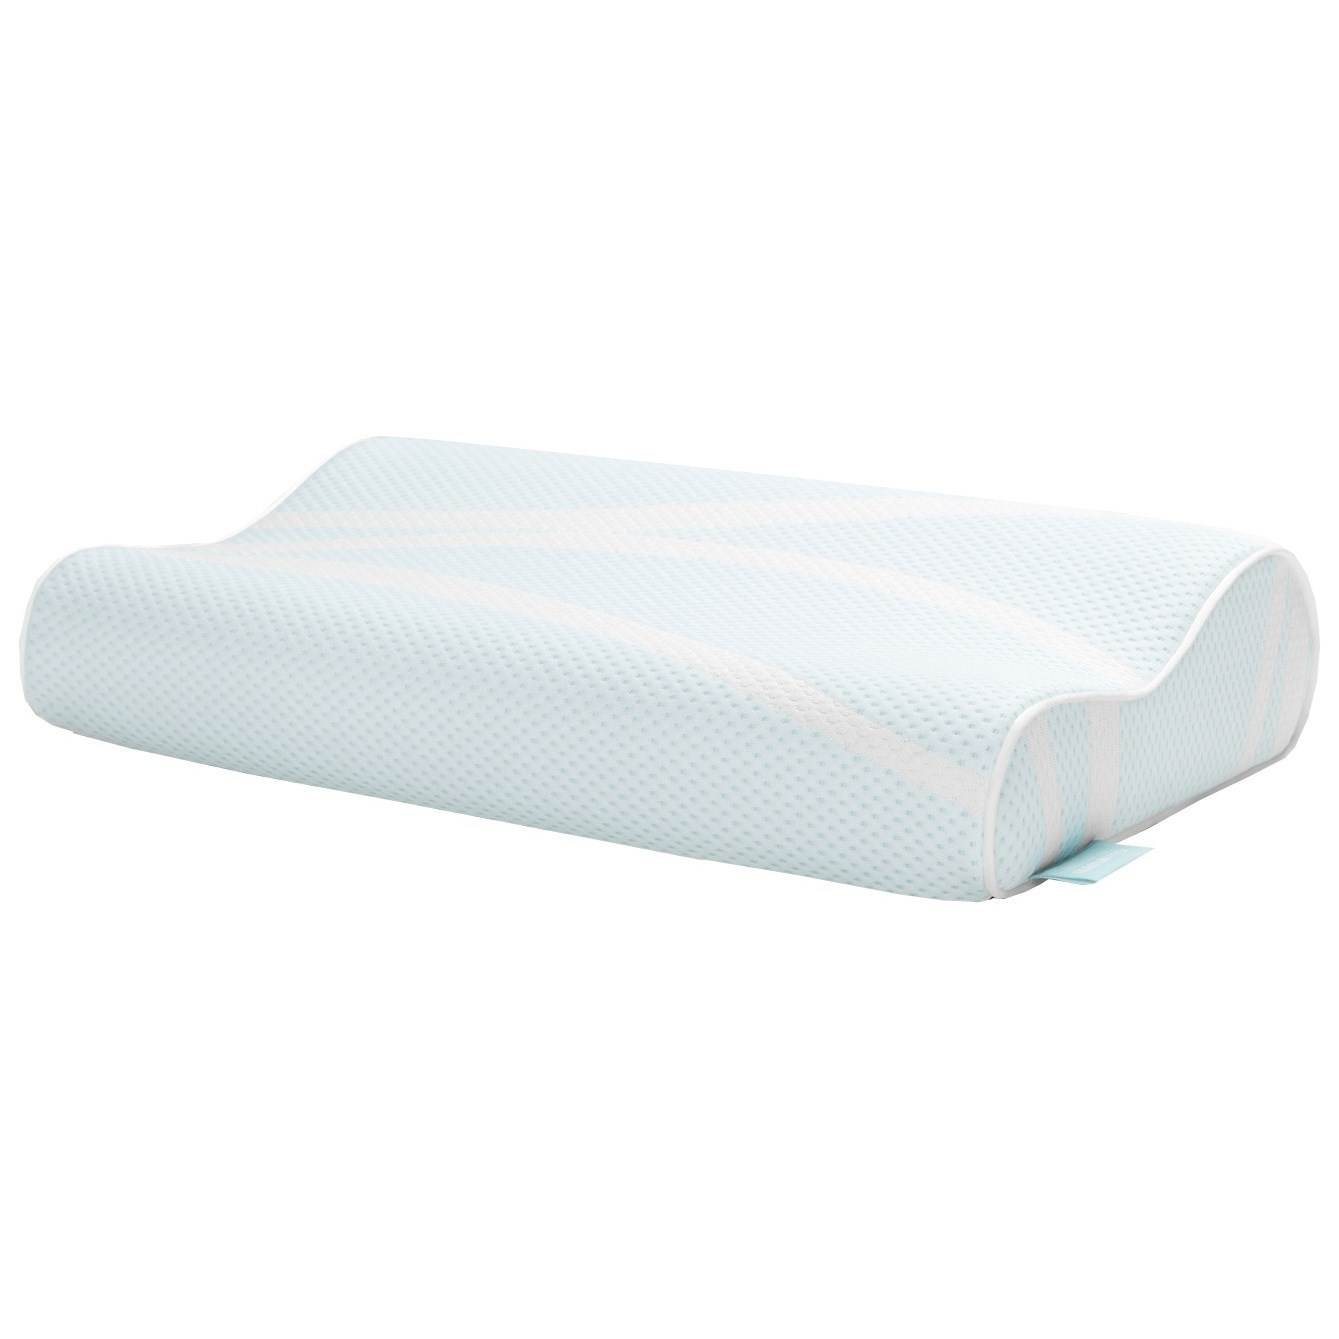 How To Use Tempurpedic Neck Pillow Breeze Pillow Breeze Neck Advanced Cooling Standard Medium Pillow By Tempur Pedic At John V Schultz Furniture